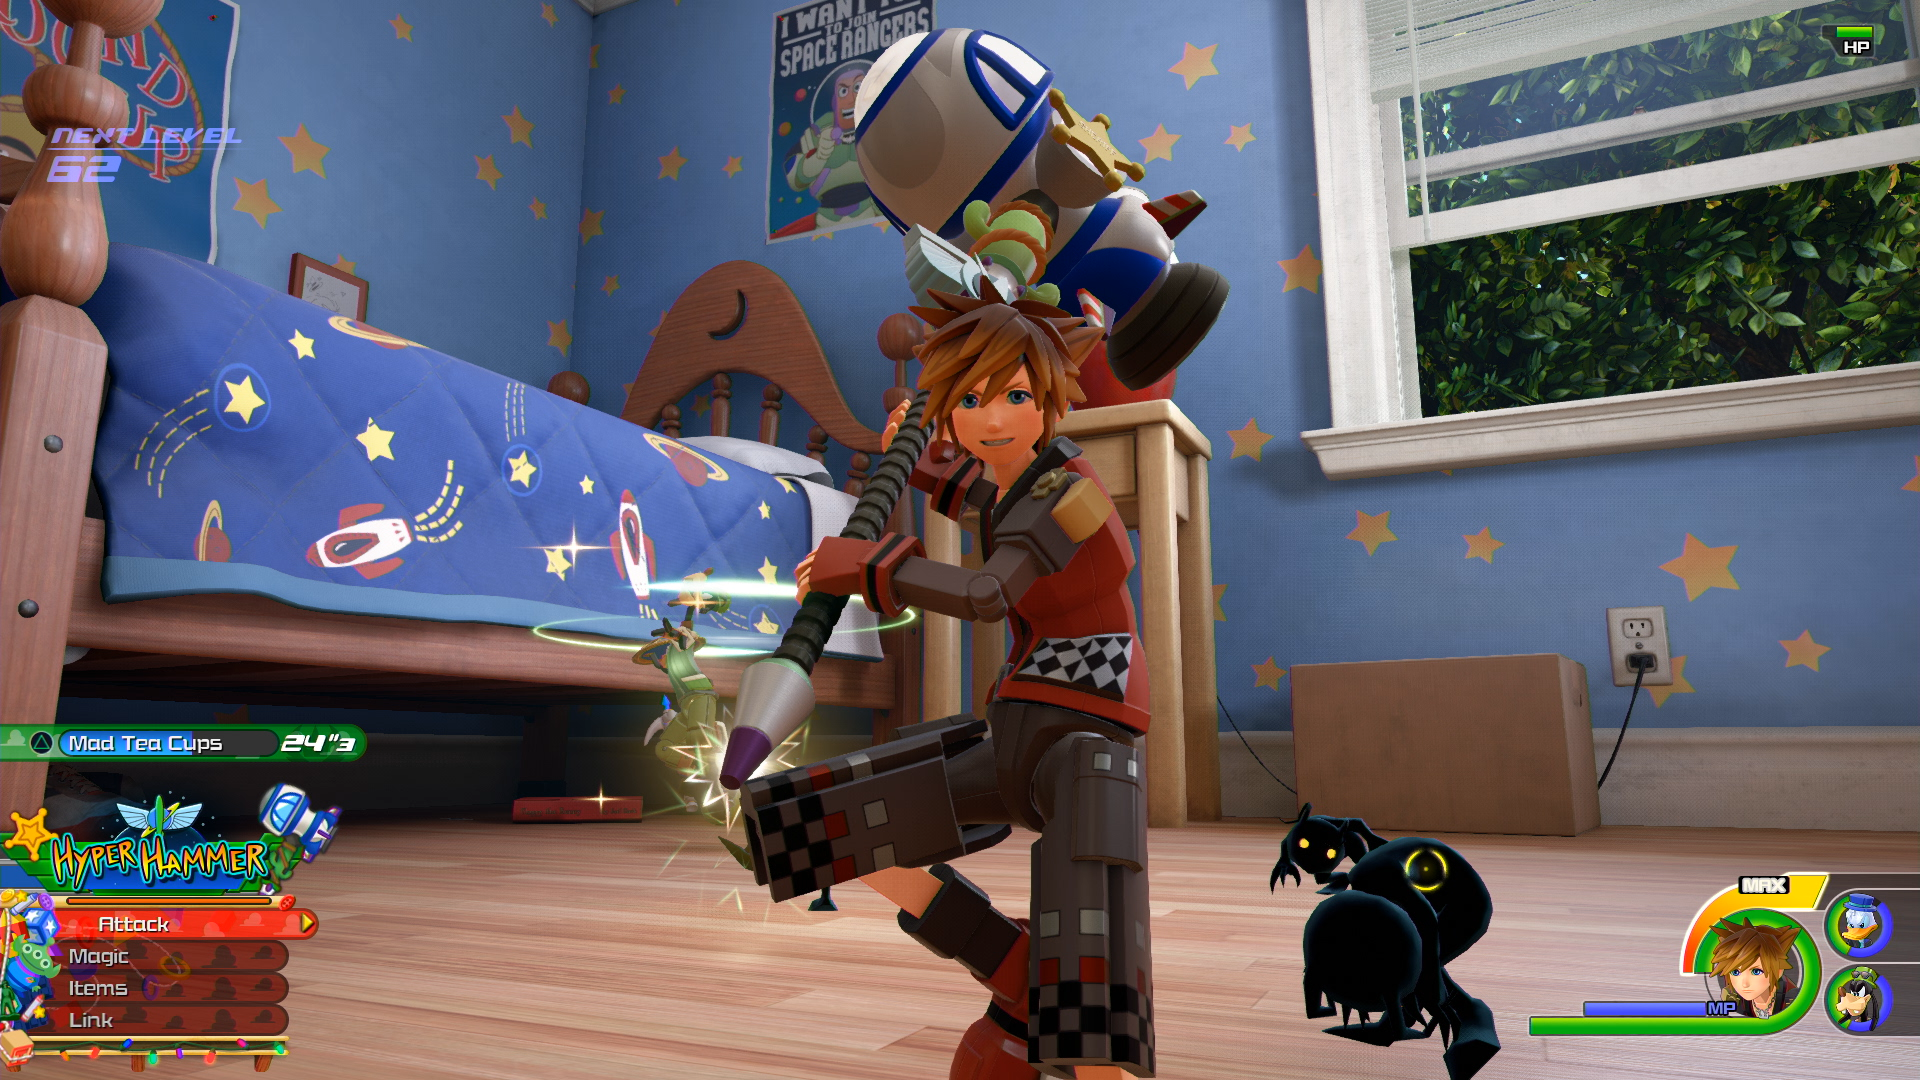 Kingdom Hearts 3 Where To Get Adamantite And Wellspring Crystal For Keyblade Upgrades Vg247